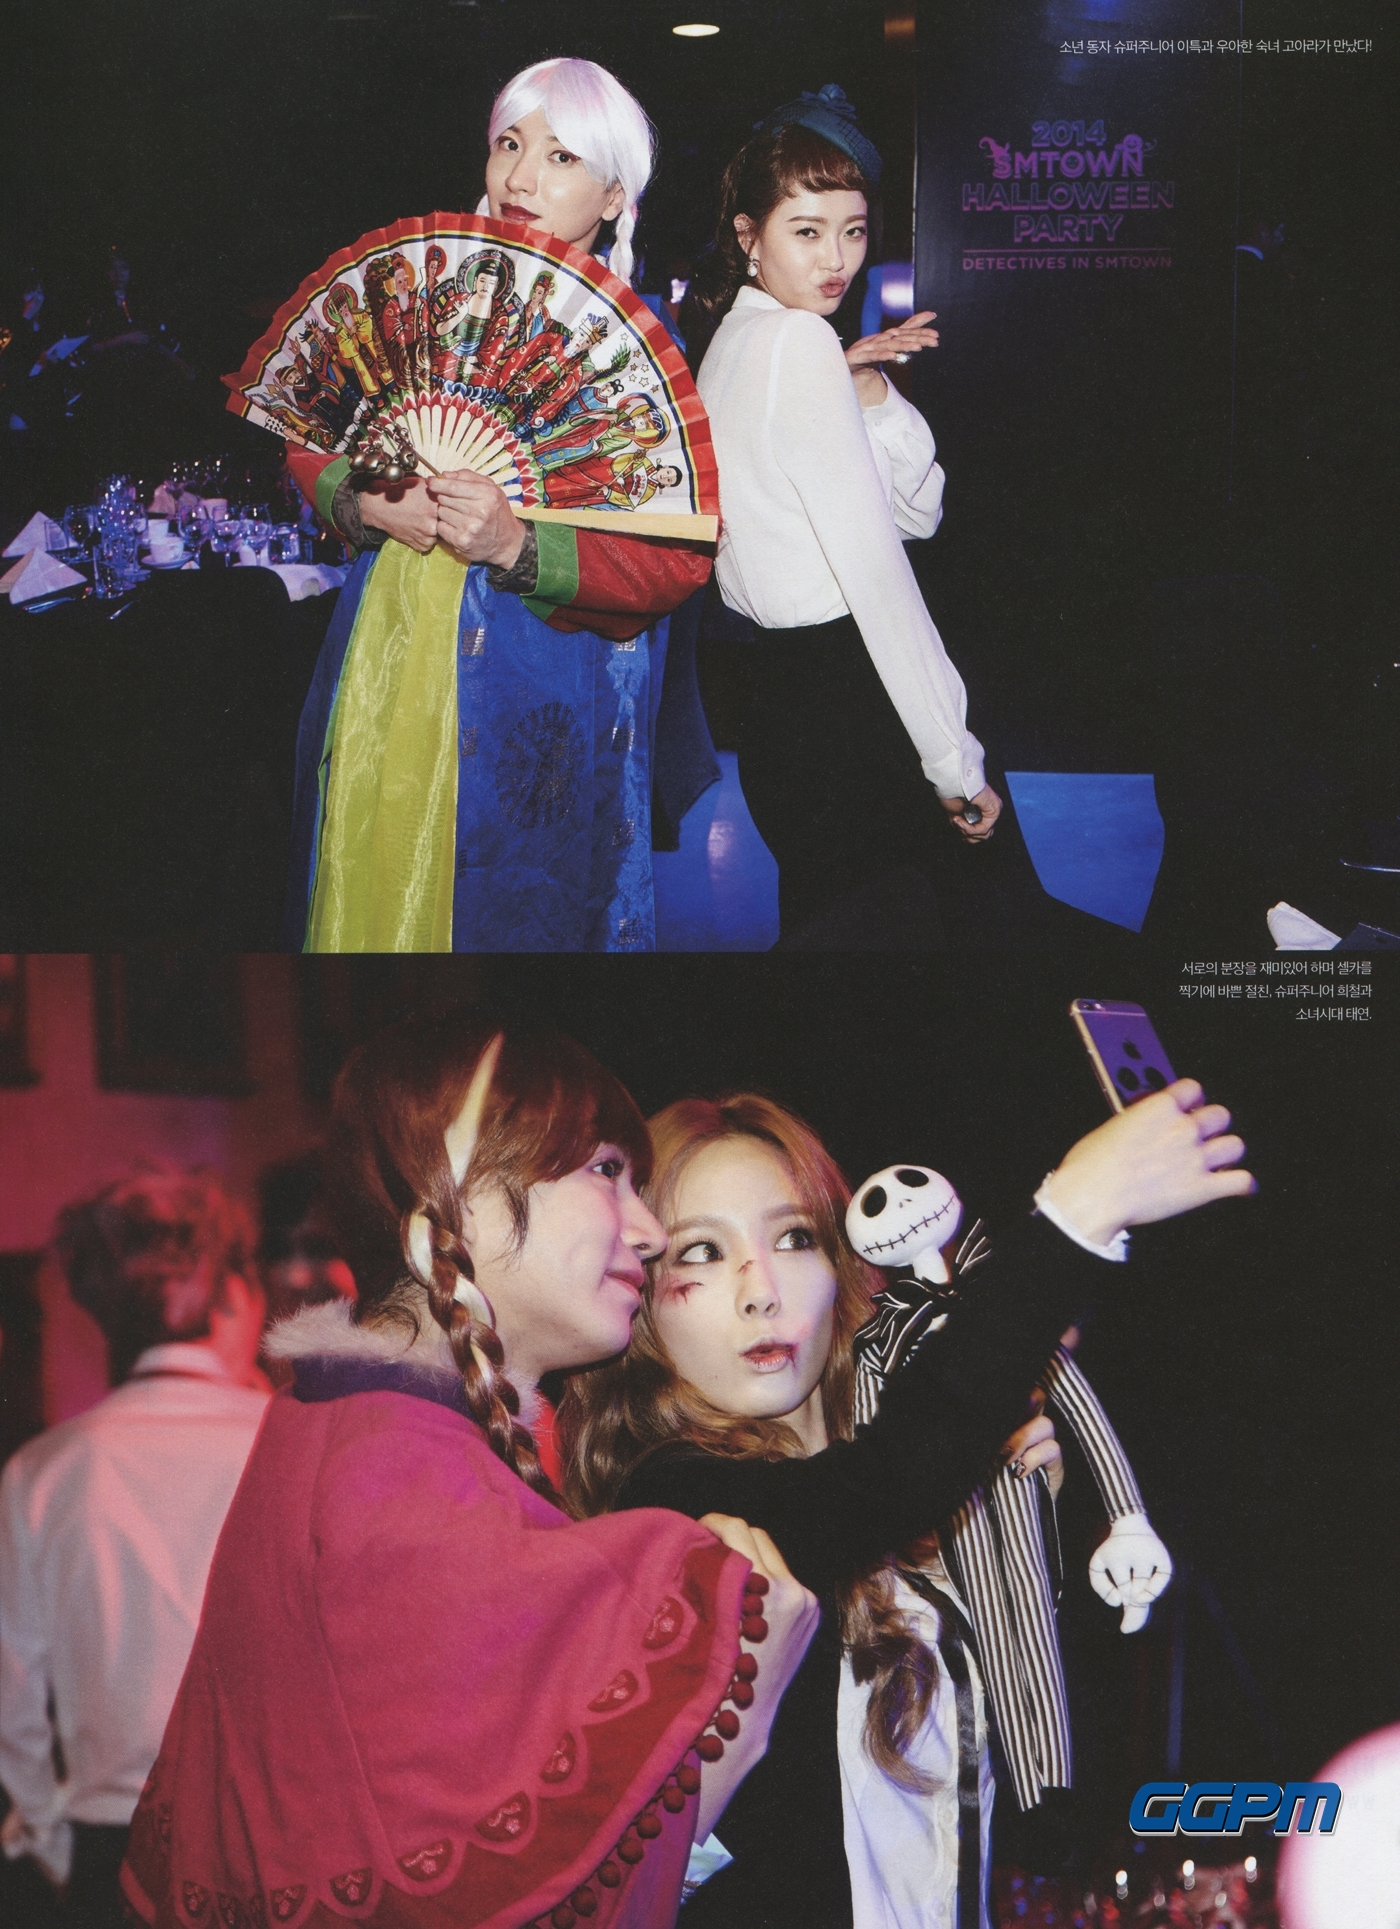 Photoshoot] [updated 23-11-2014]smtown halloween party celebrity ...